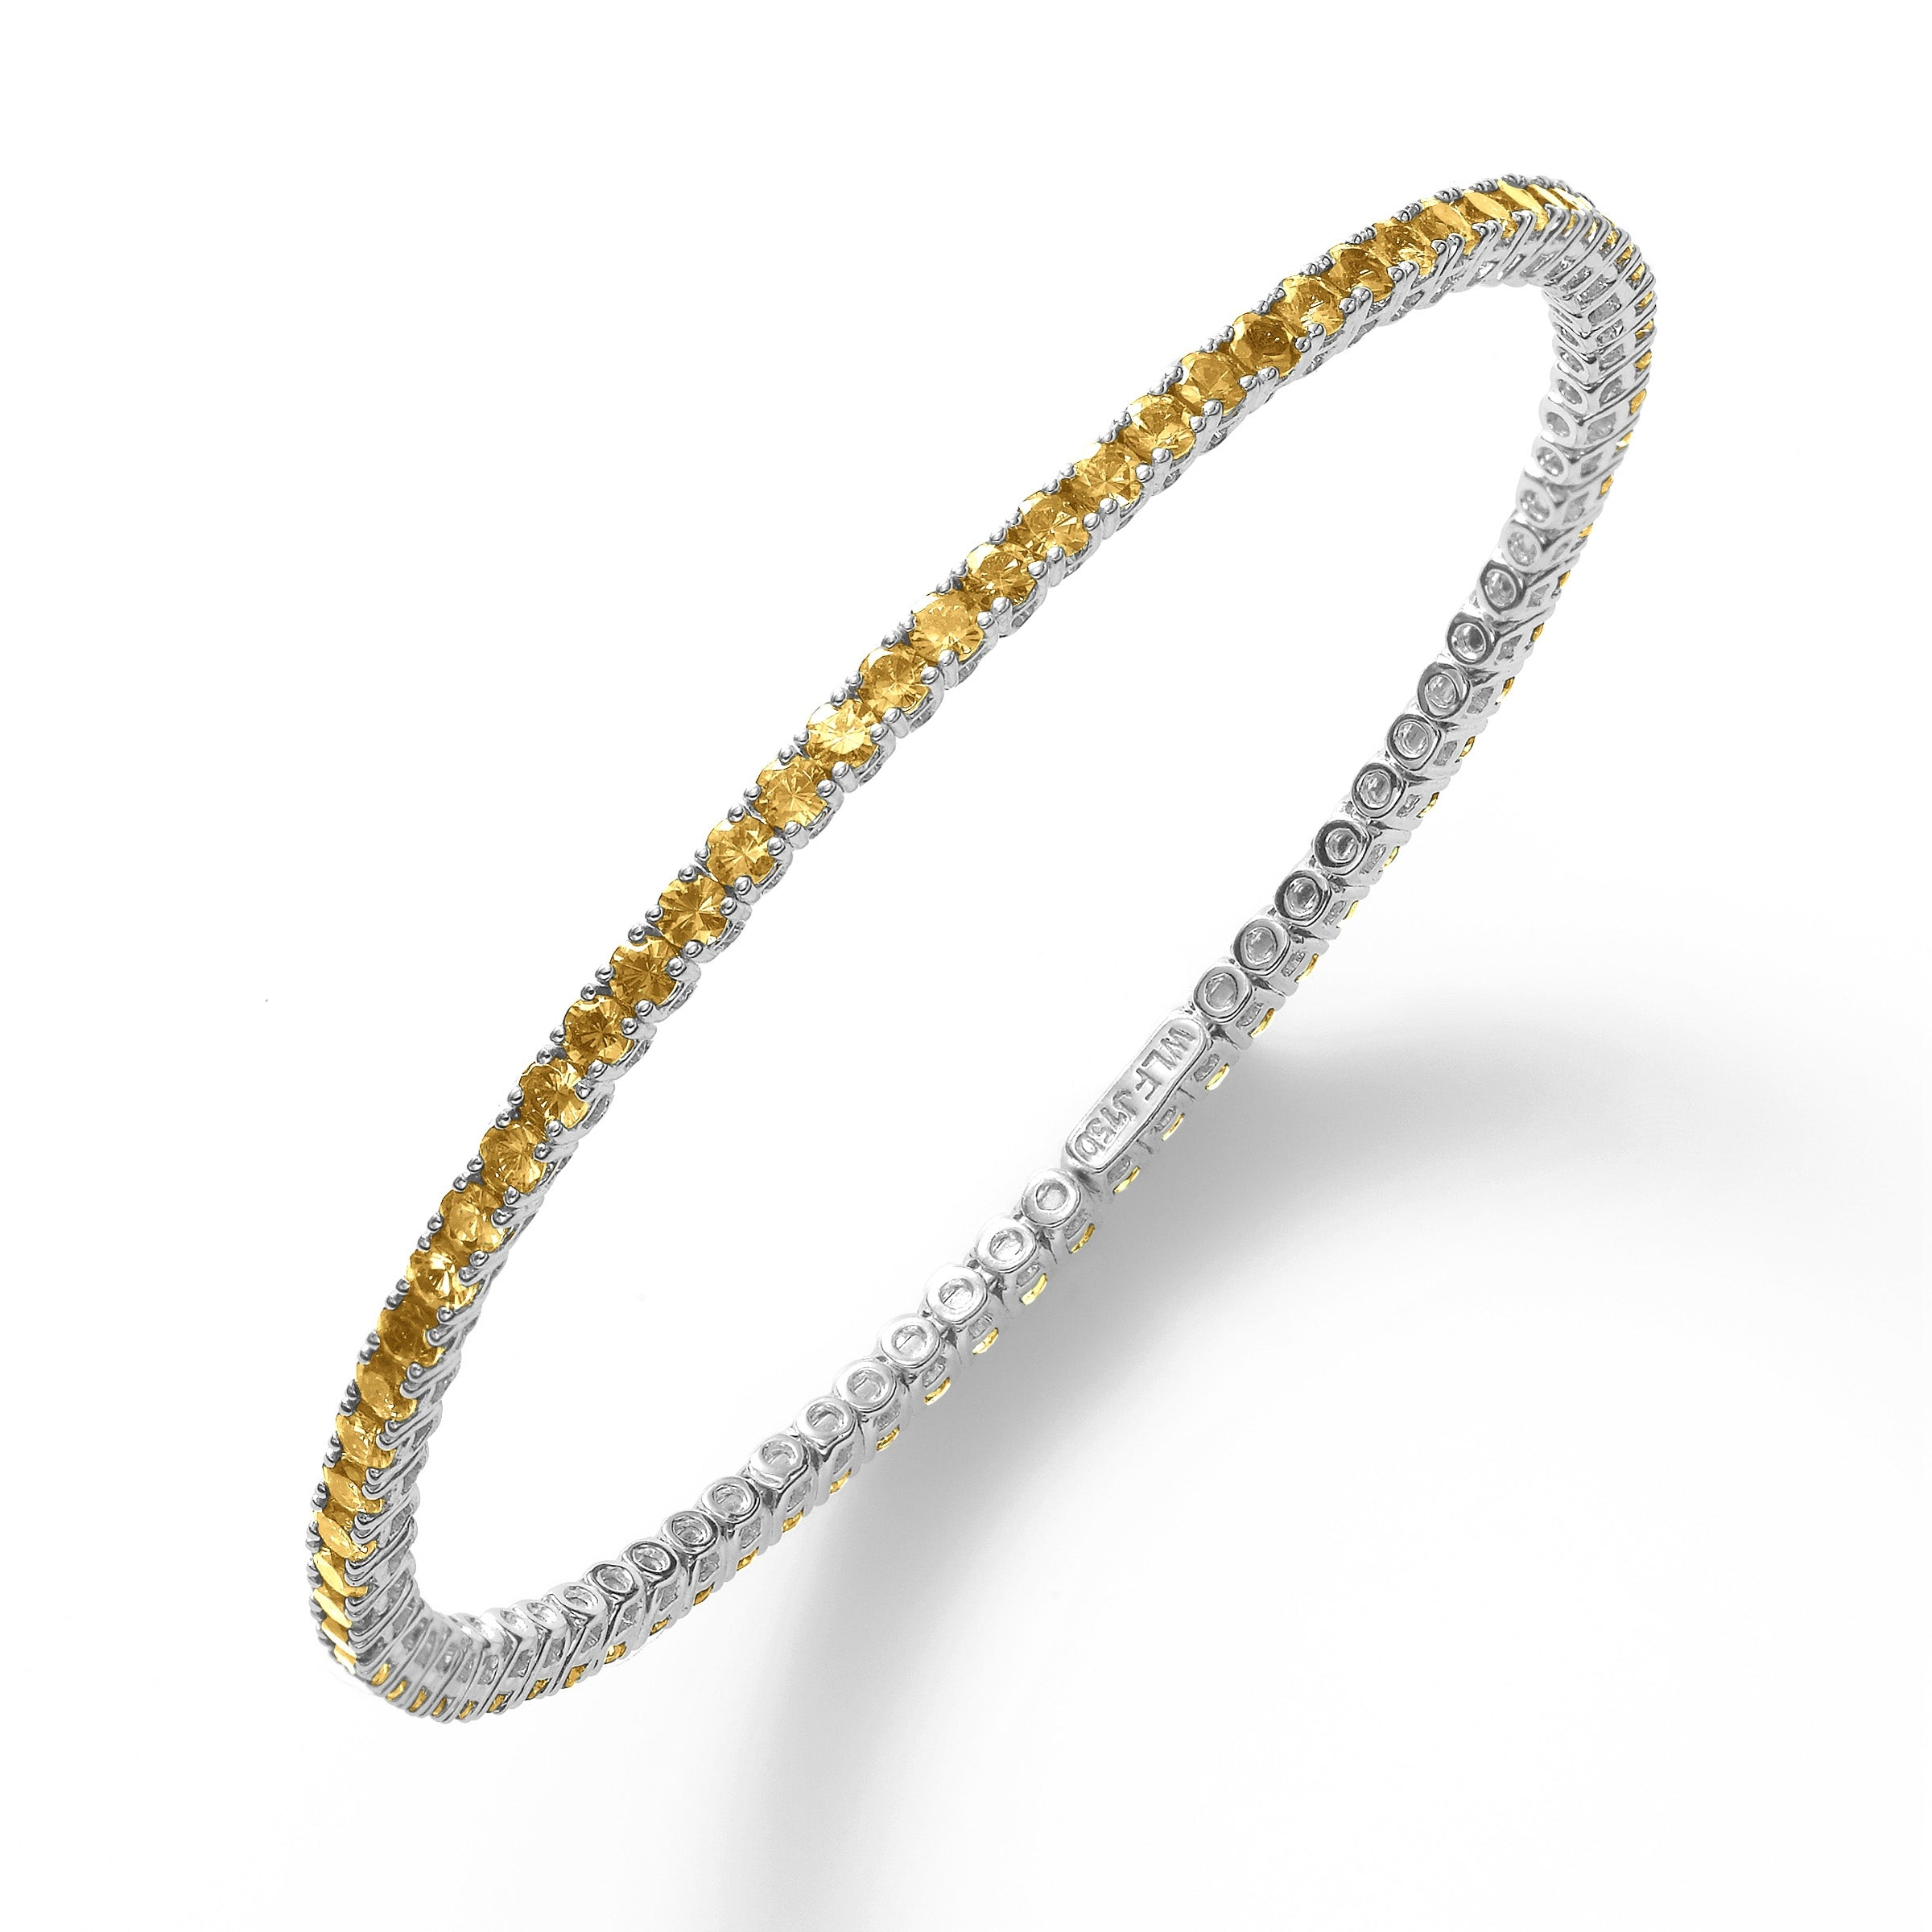 Cuff-Style Yellow Sapphire Bangle Bracelet, 18K White Gold